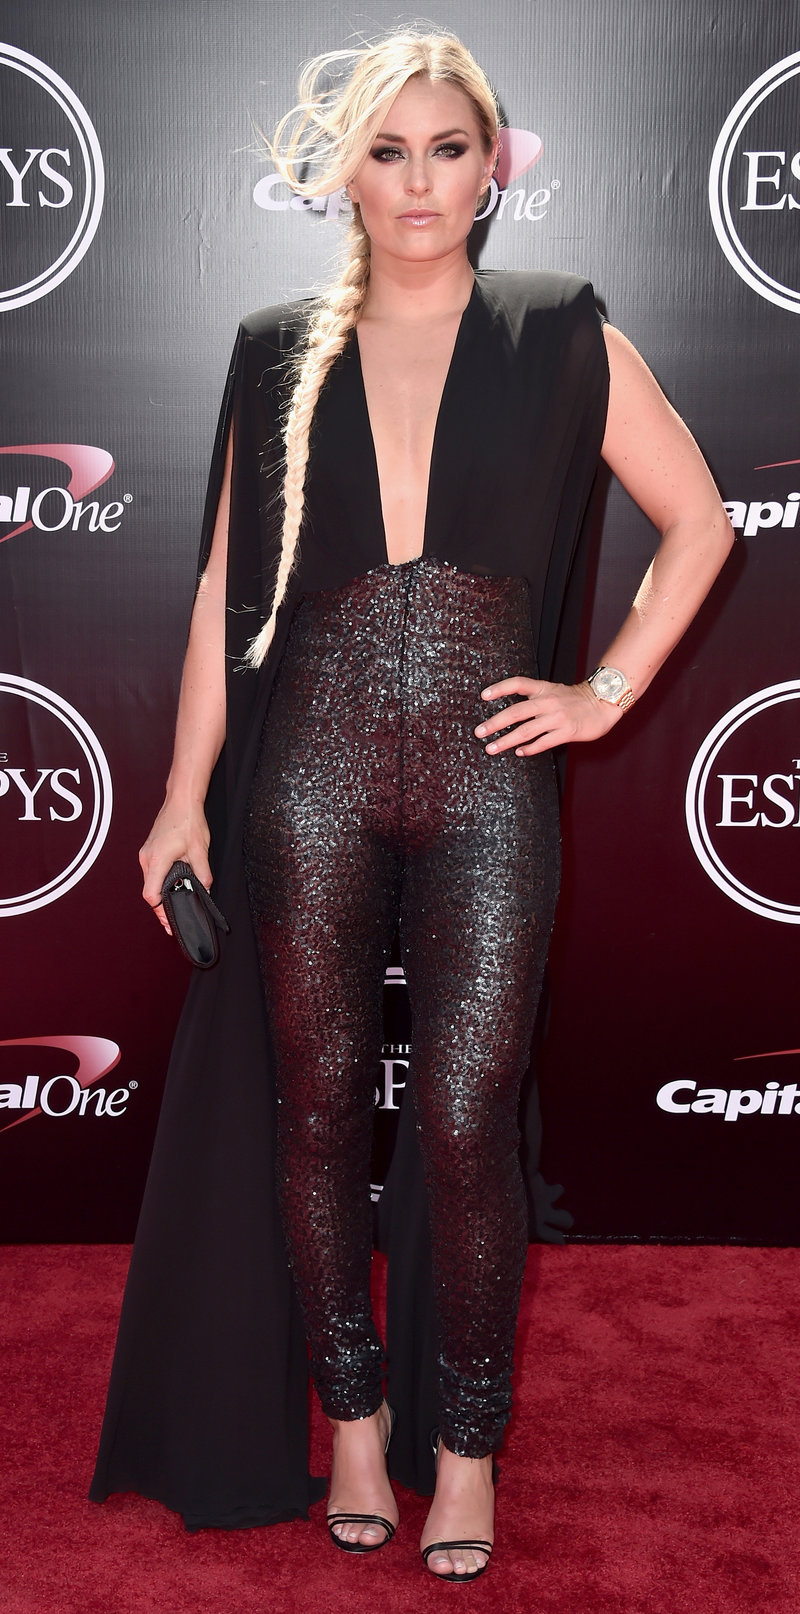 LOS ANGELES, CA - JULY 13: Skiier Lindsey Vonn attends the 2016 ESPYS at Microsoft Theater on July 13, 2016 in Los Angeles, California. (Photo by Alberto E. Rodriguez/Getty Images)